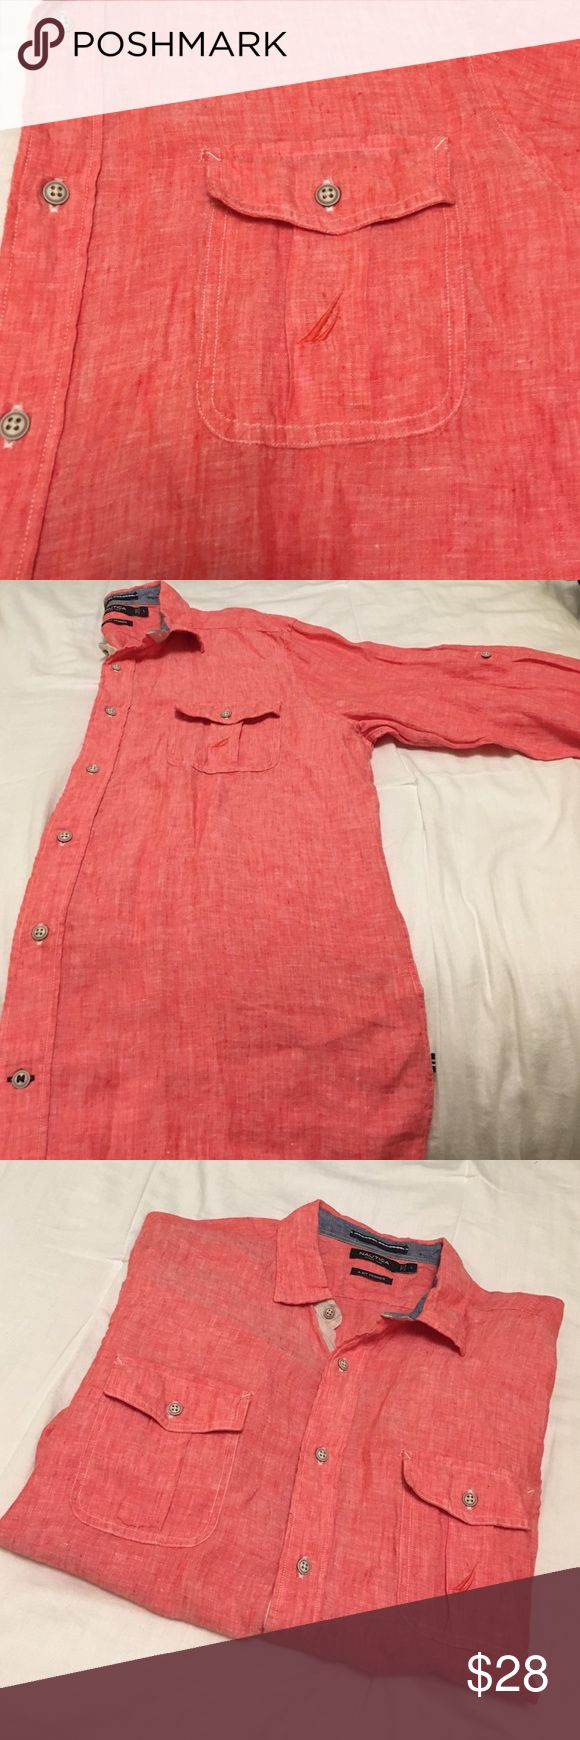 Nautica Button-down Red button-down. 100% linen. Has two pockets in the front, two buttons around cuff of sleeve for adjusting, & single button in middle of arm sleeve for adjusting length of the sleeve.  Buttons all the way down the shirt are a cream color. This is a really great beach/ summer shirt. It's very light. Good condition! Nautica Shirts Casual Button Down Shirts